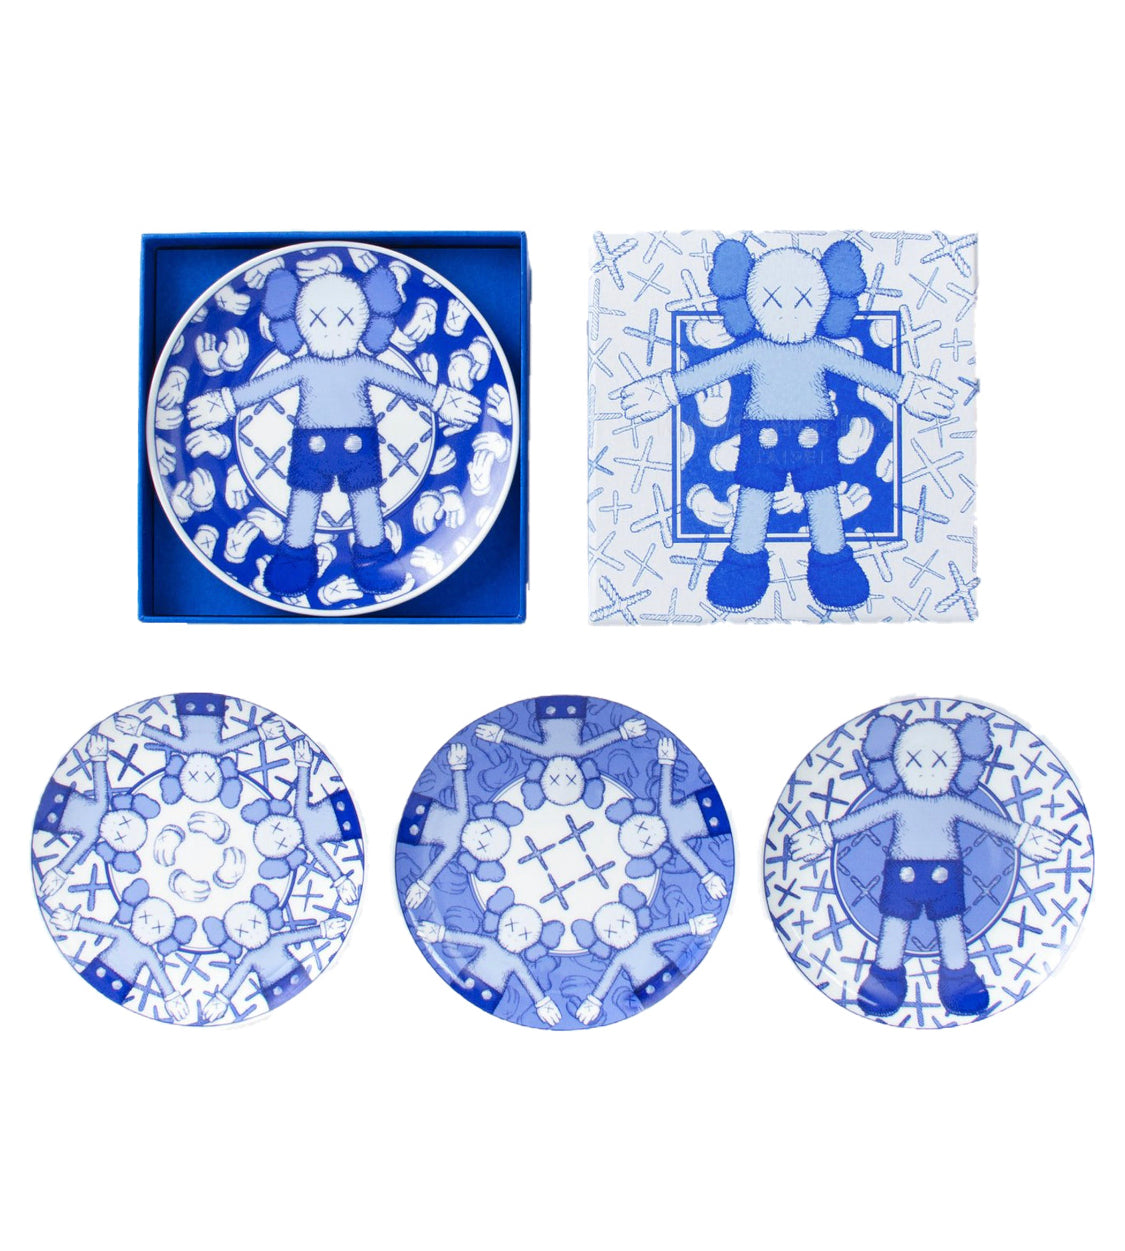 KAWS: HOLIDAY ceramic plate set (blue/white) (set of 4), 2019